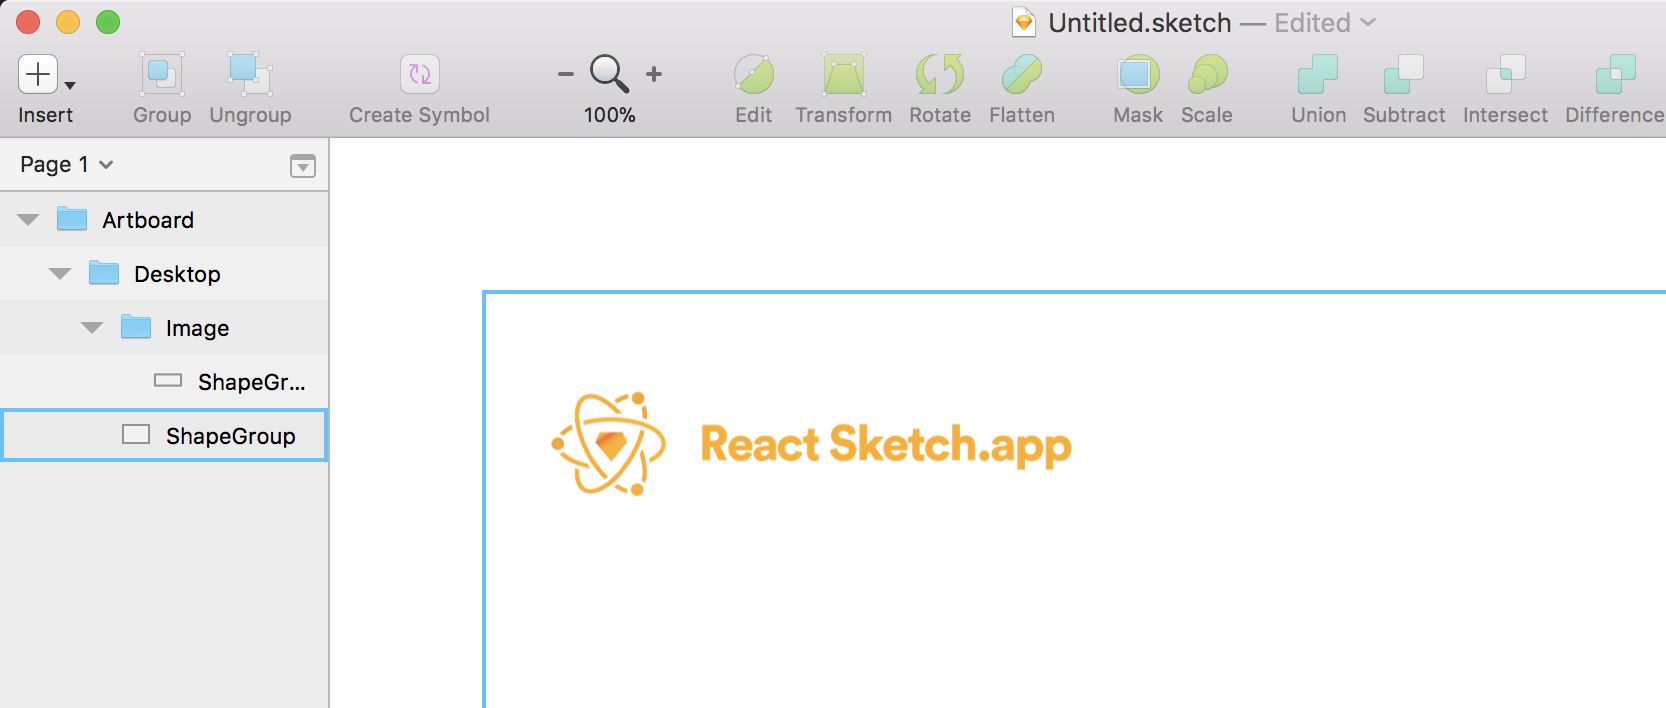 Sketch quits unexpectedly when importing image assets